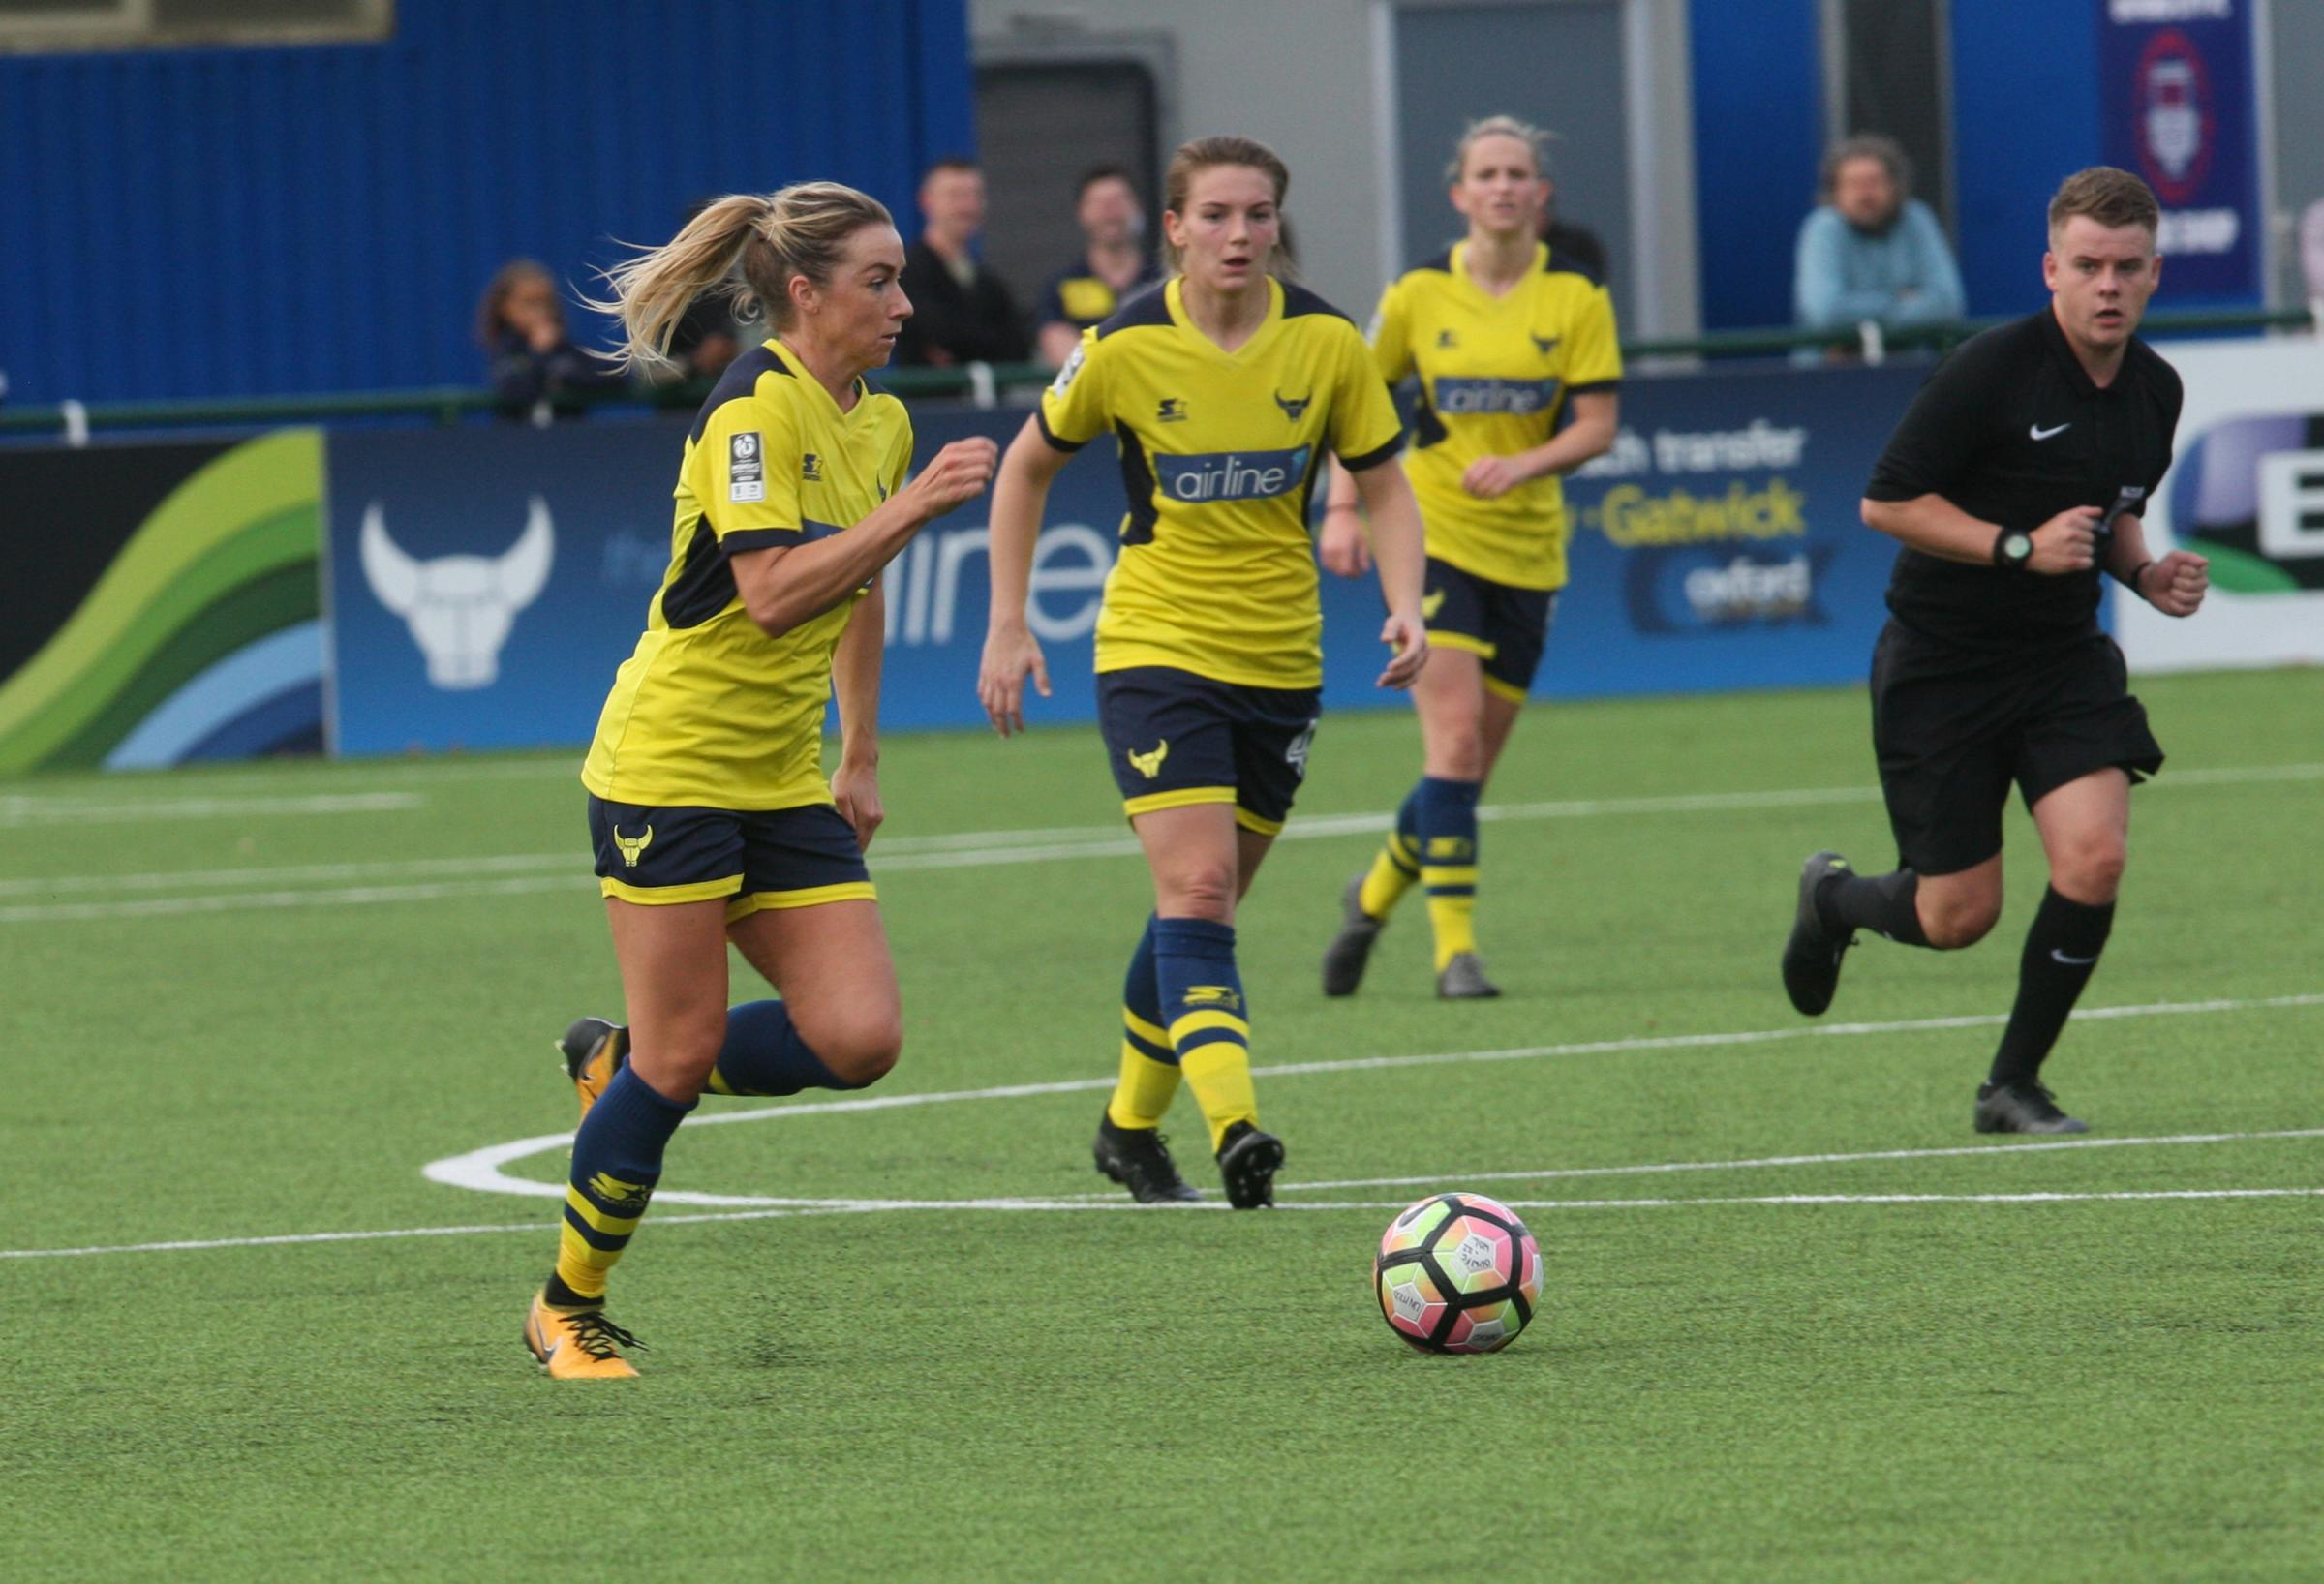 Emily Allen opened the scoring for Oxford United